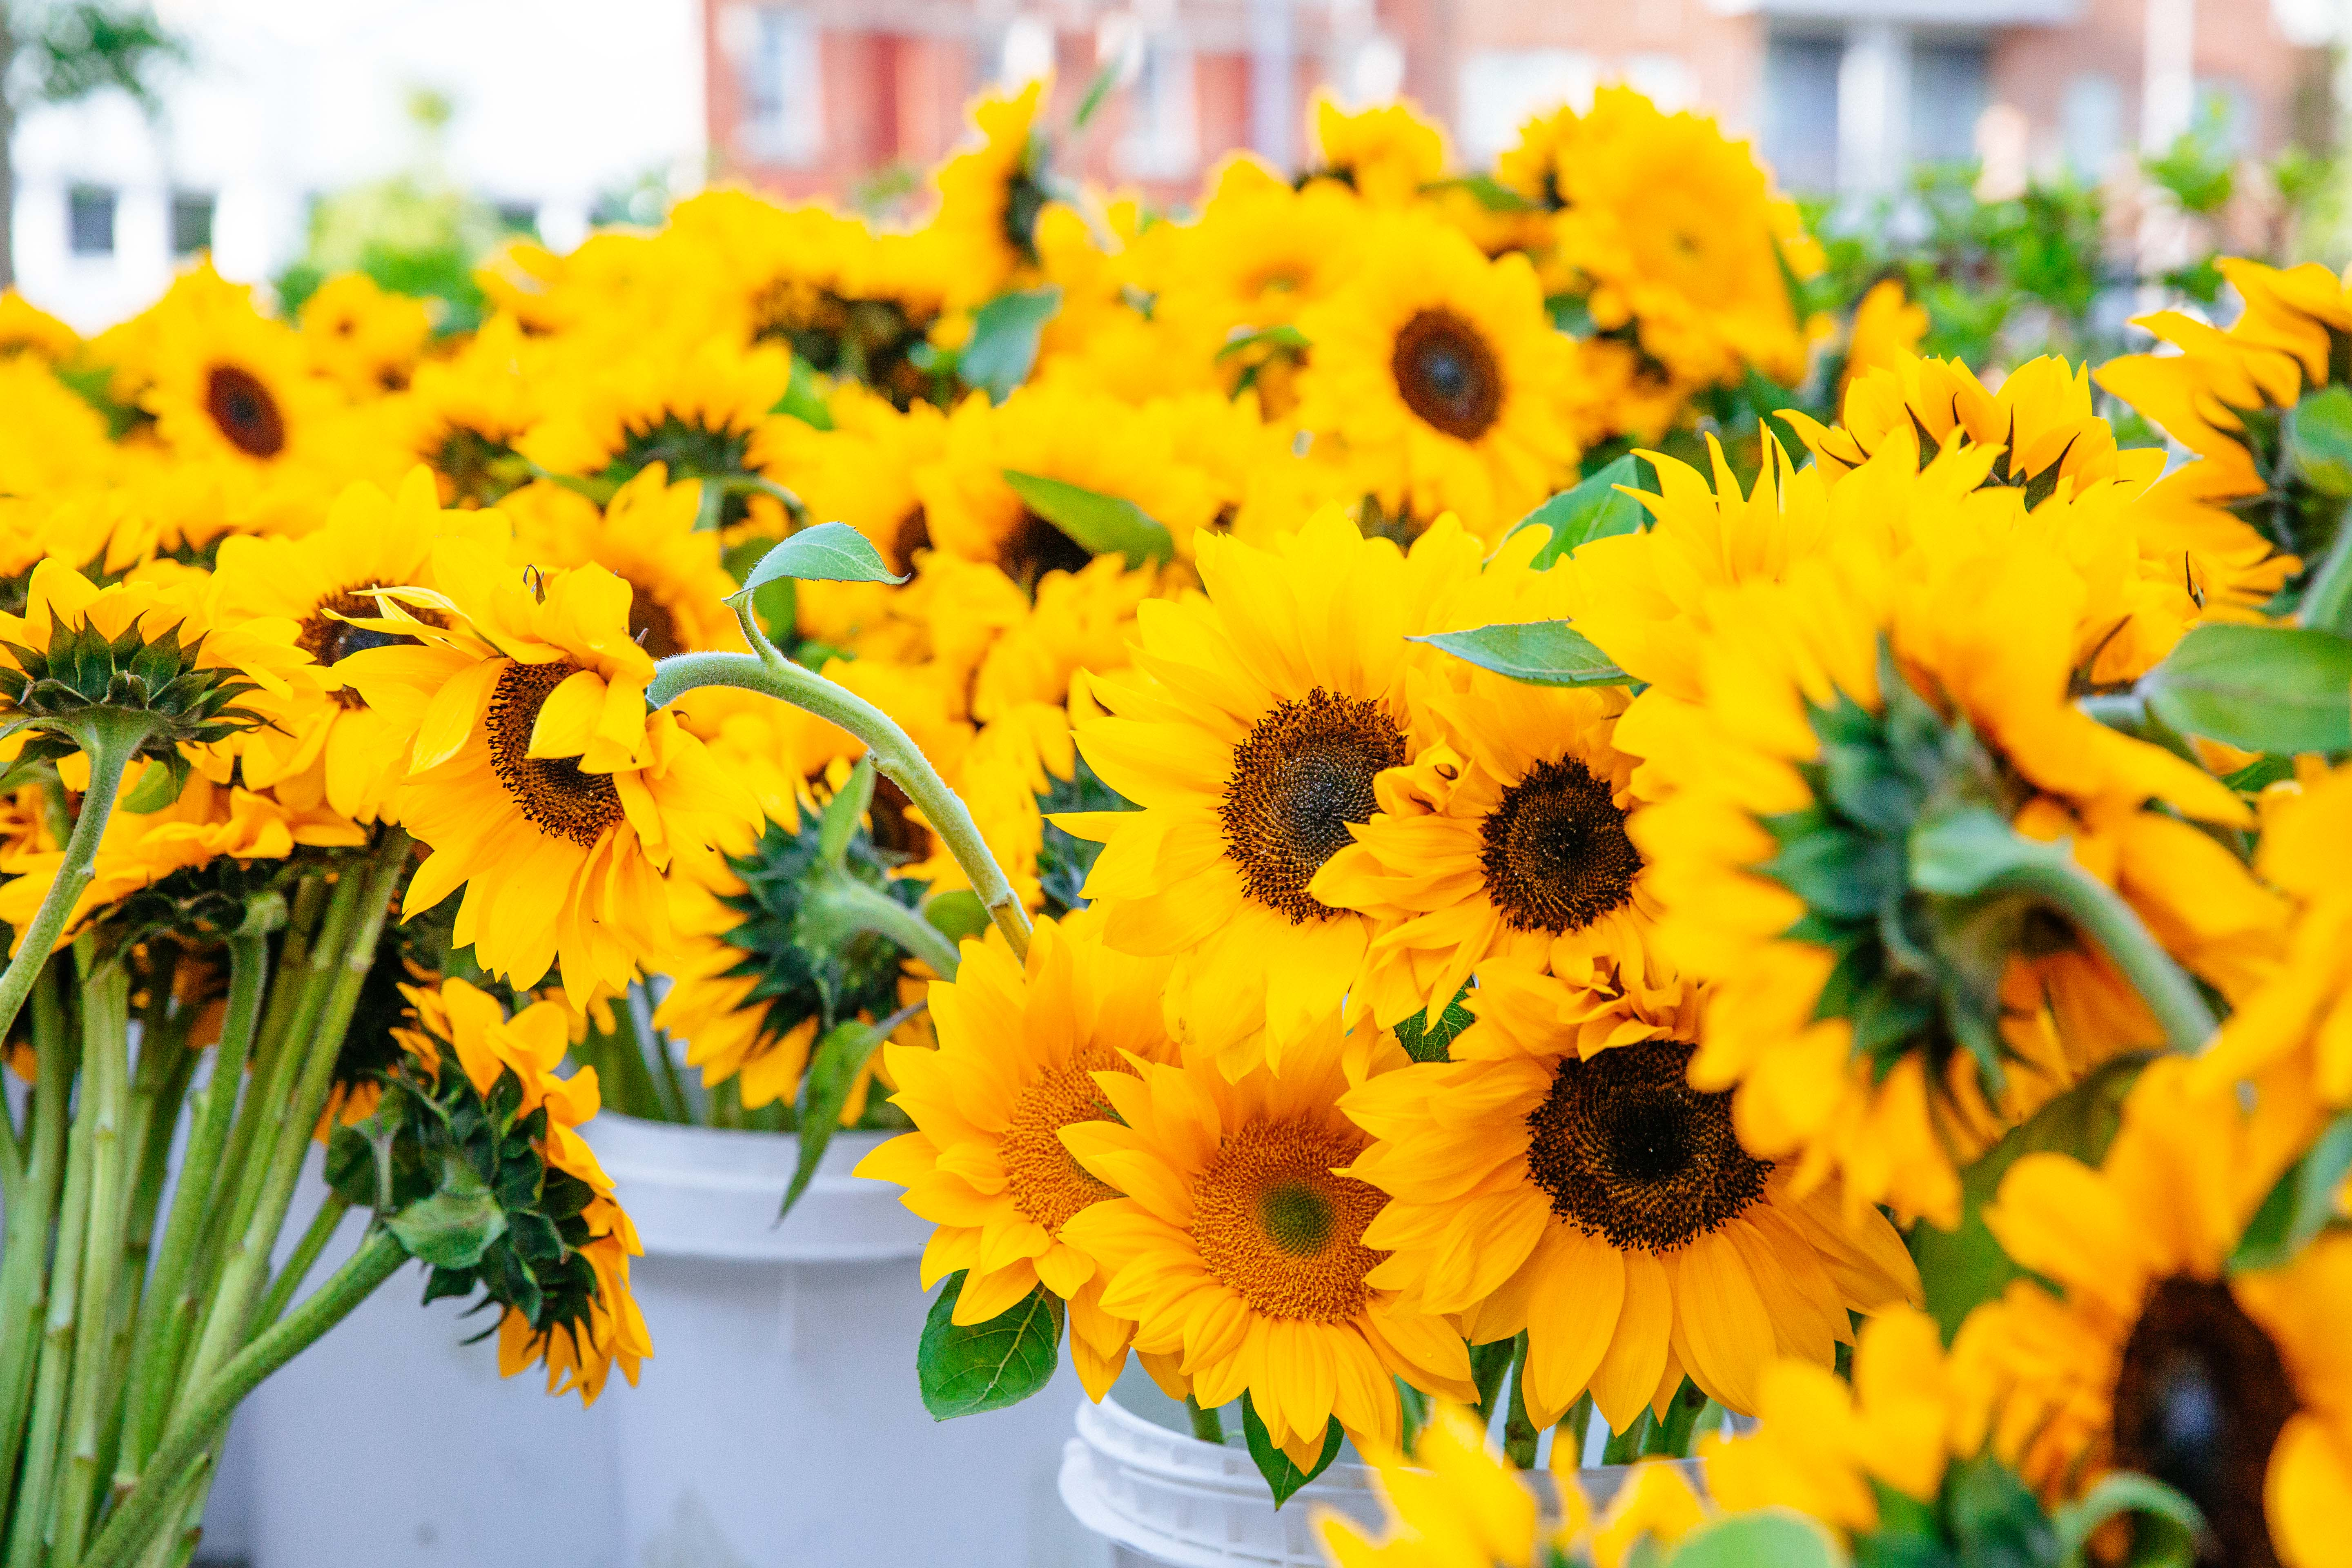 Bud Bentons Flowers Bring Sunshine To The Red Stick Farmers Market